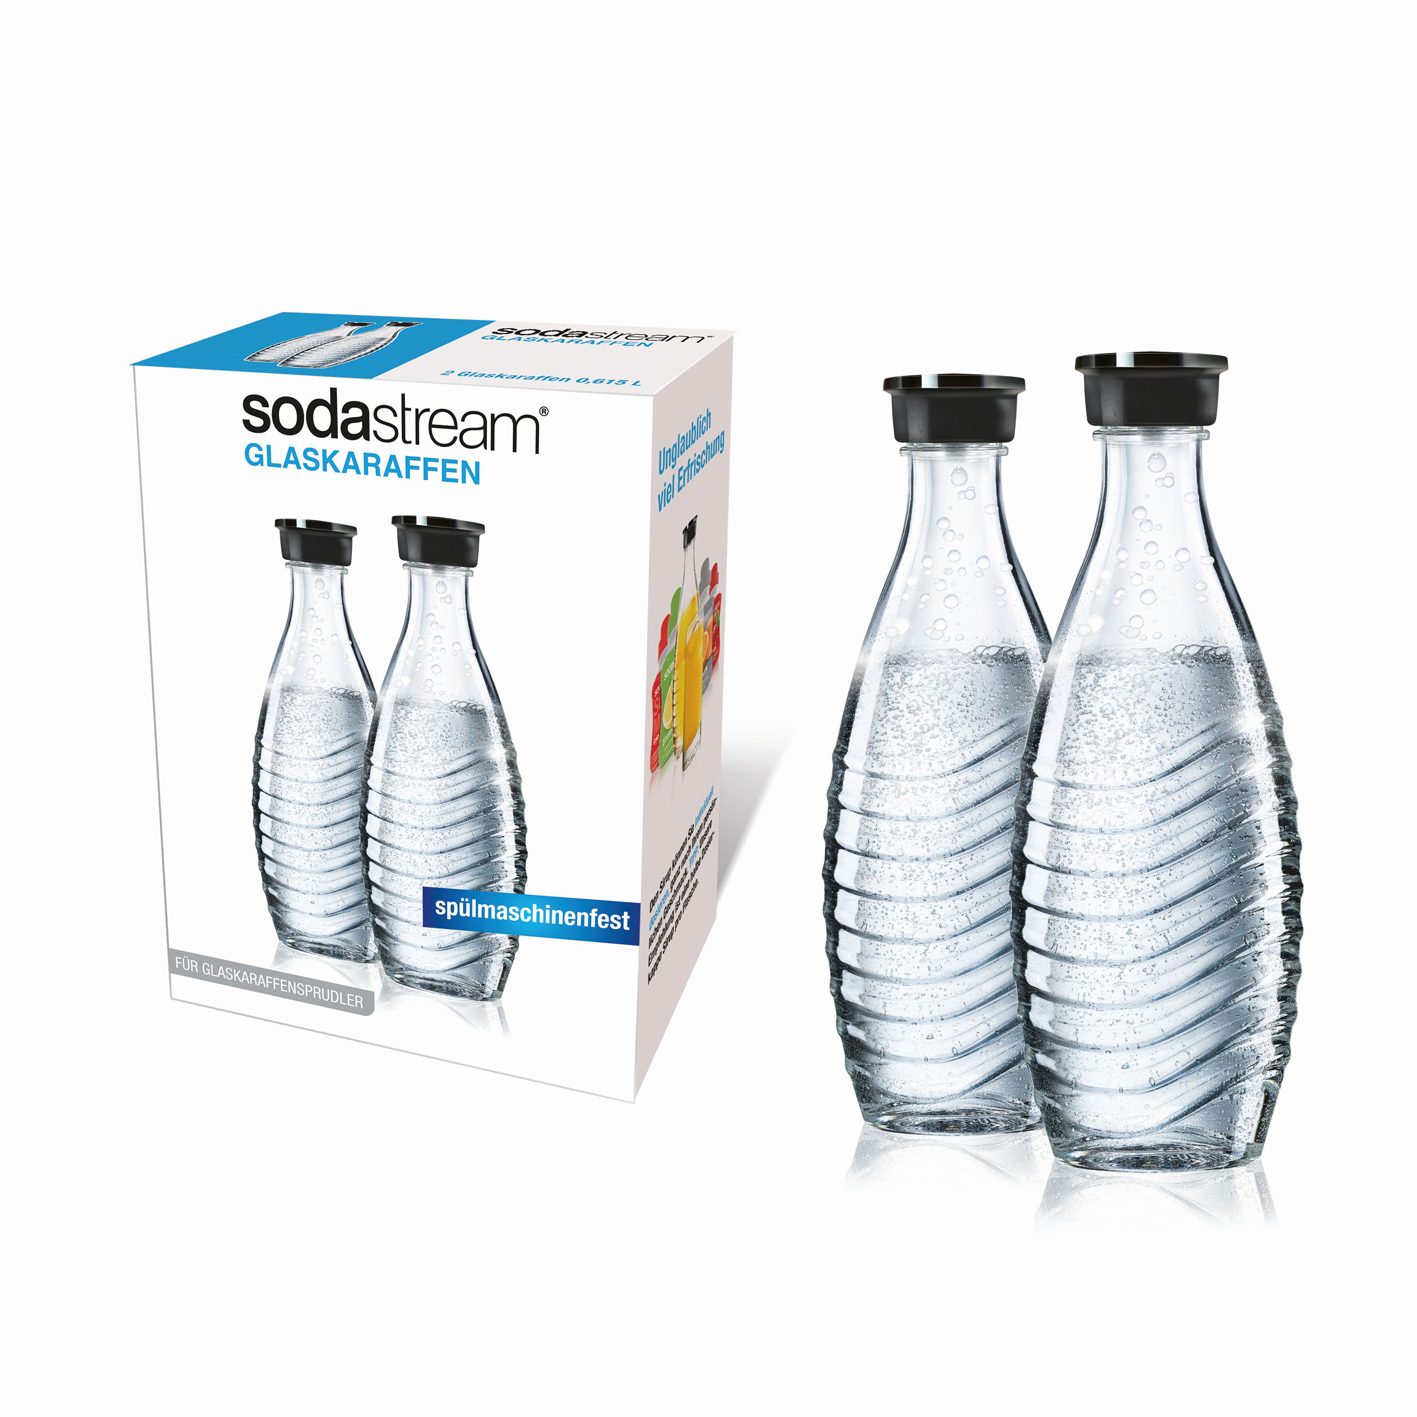 sodastream duopack glaskaraffe f r penguin und crystal 2x 0 6l wassersprudler ebay. Black Bedroom Furniture Sets. Home Design Ideas